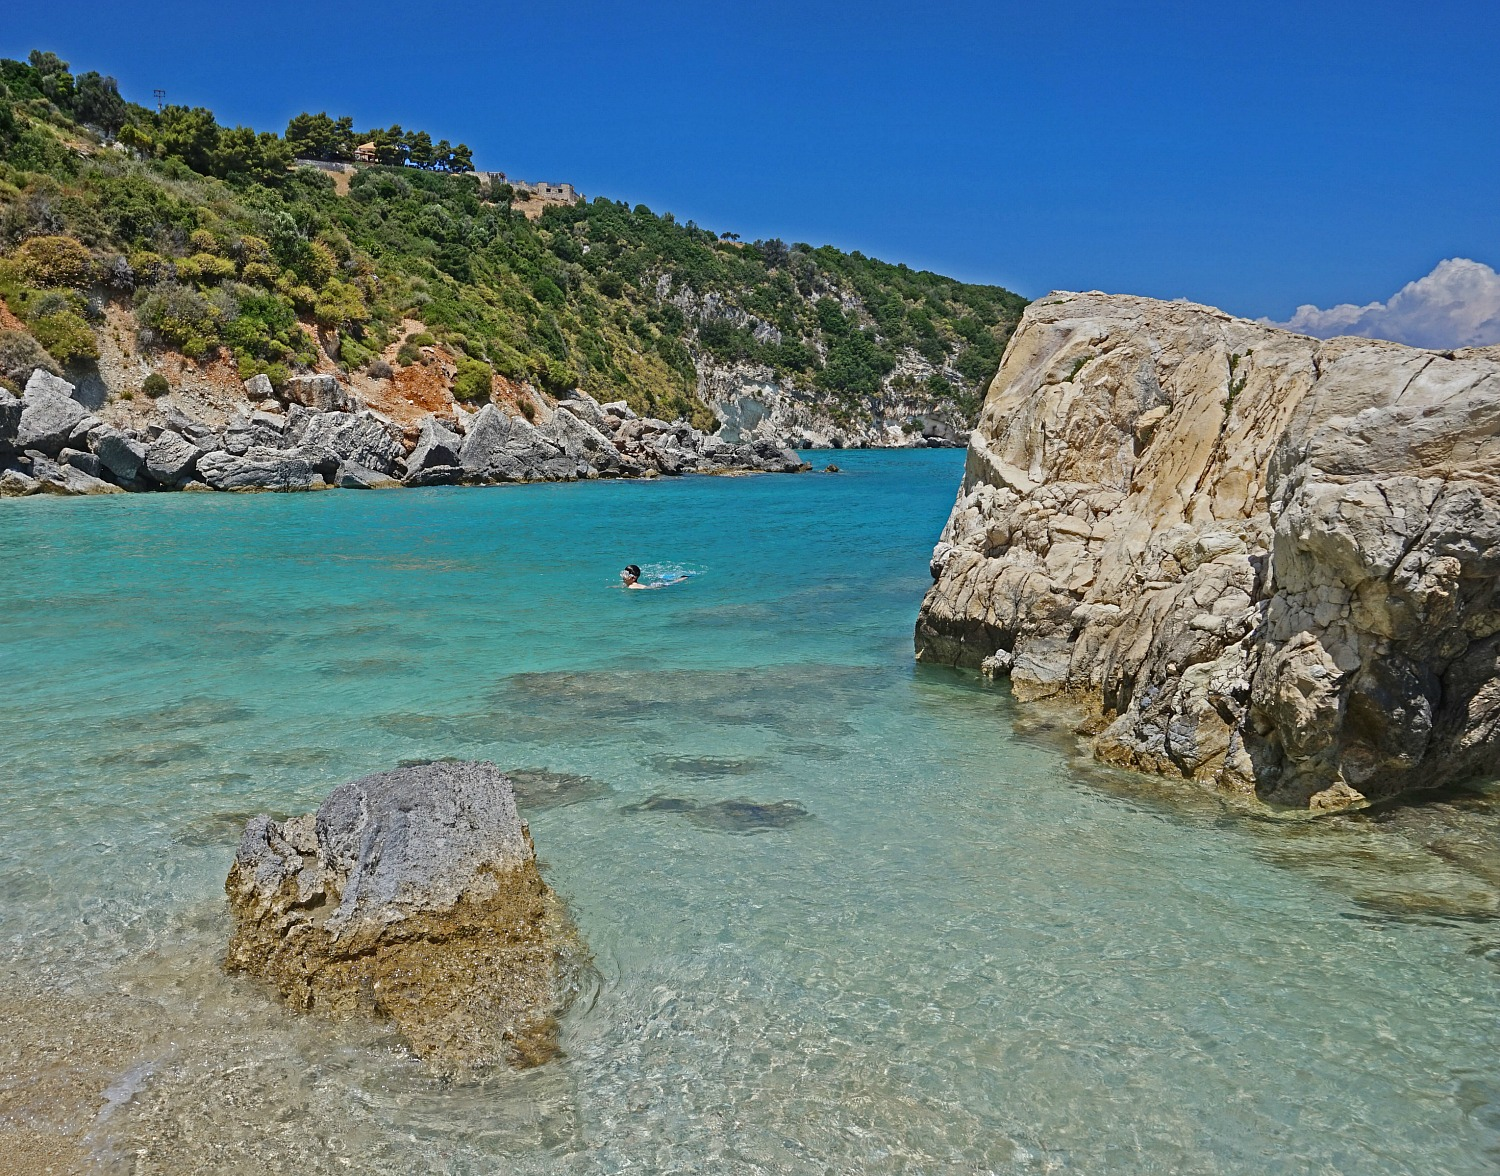 Zakynthos Greece - how to visit. Beach with a large boulder.